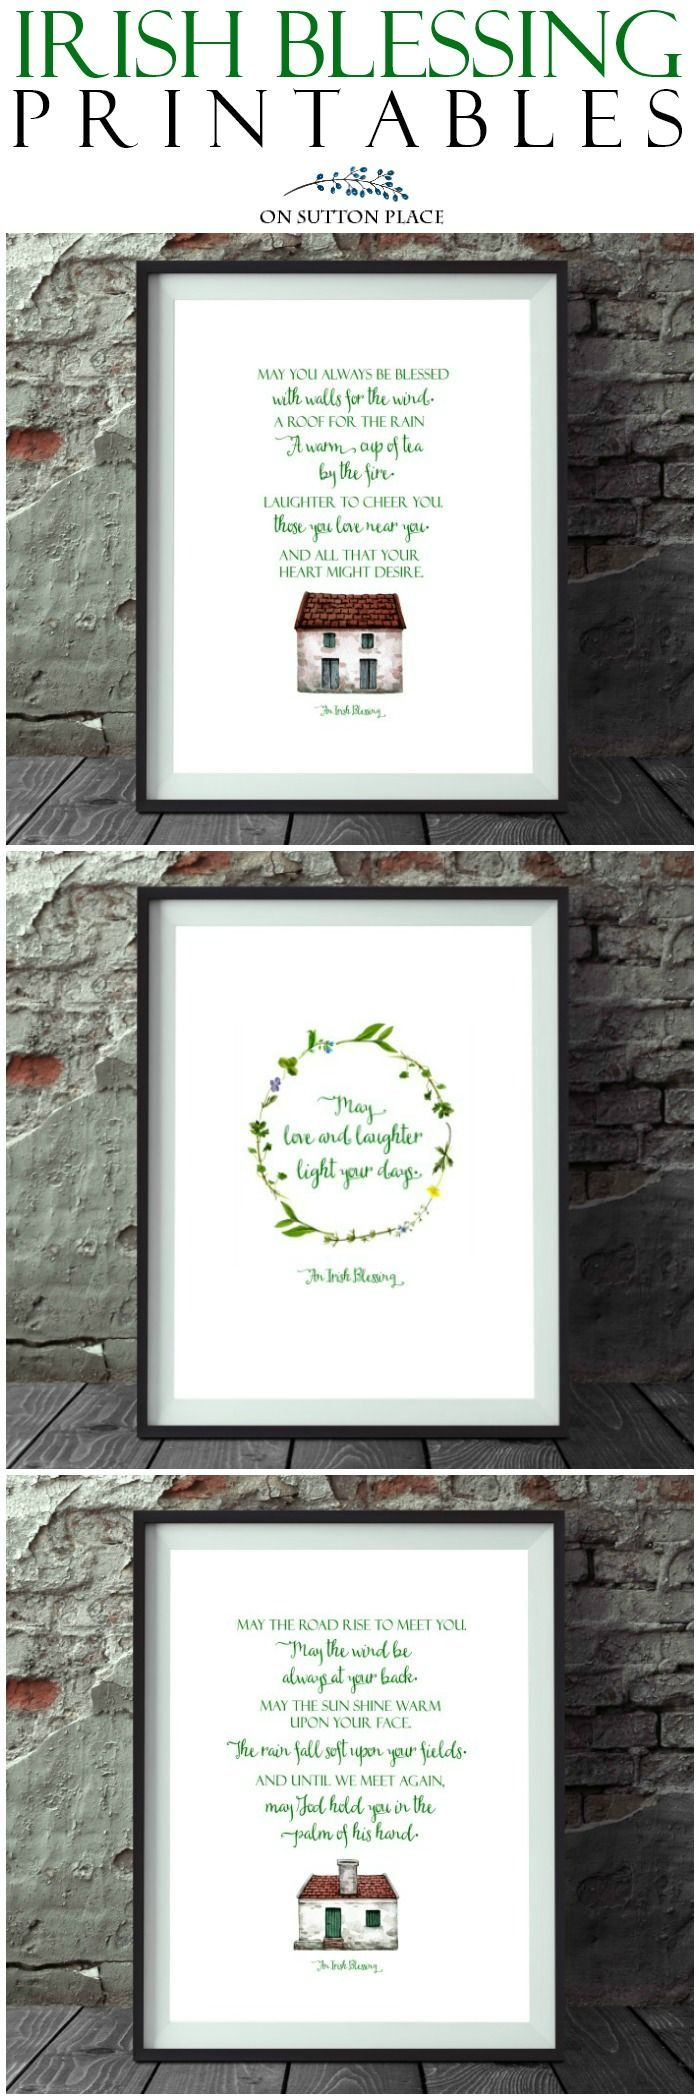 Irish Blessing Free Printables for St. Patrick\'s Day: 3 Designs! A ...